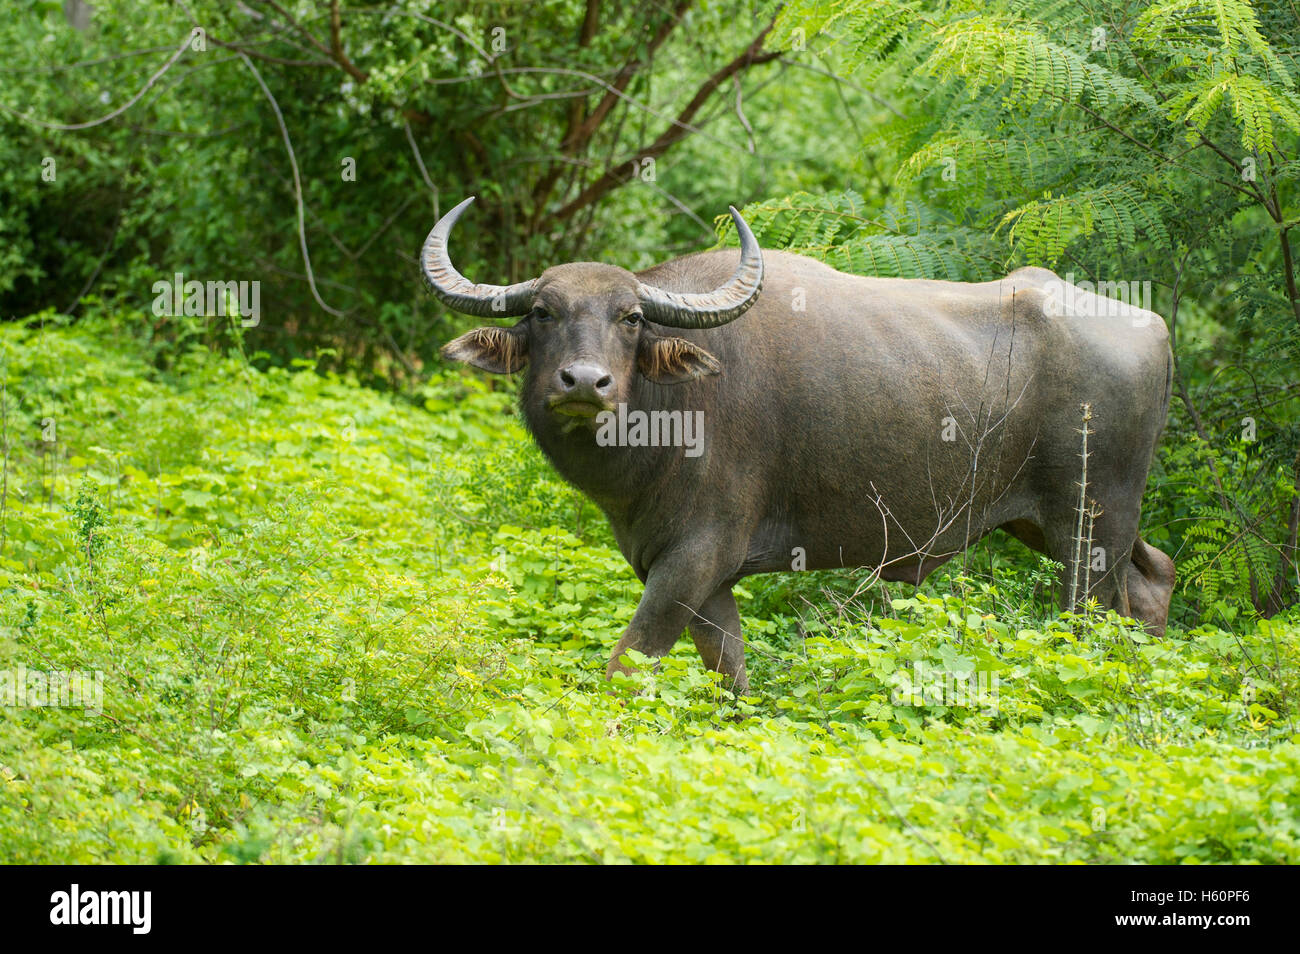 Wild Water buffalo, Bubalus bubalus, parc national de Yala, au Sri Lanka Photo Stock